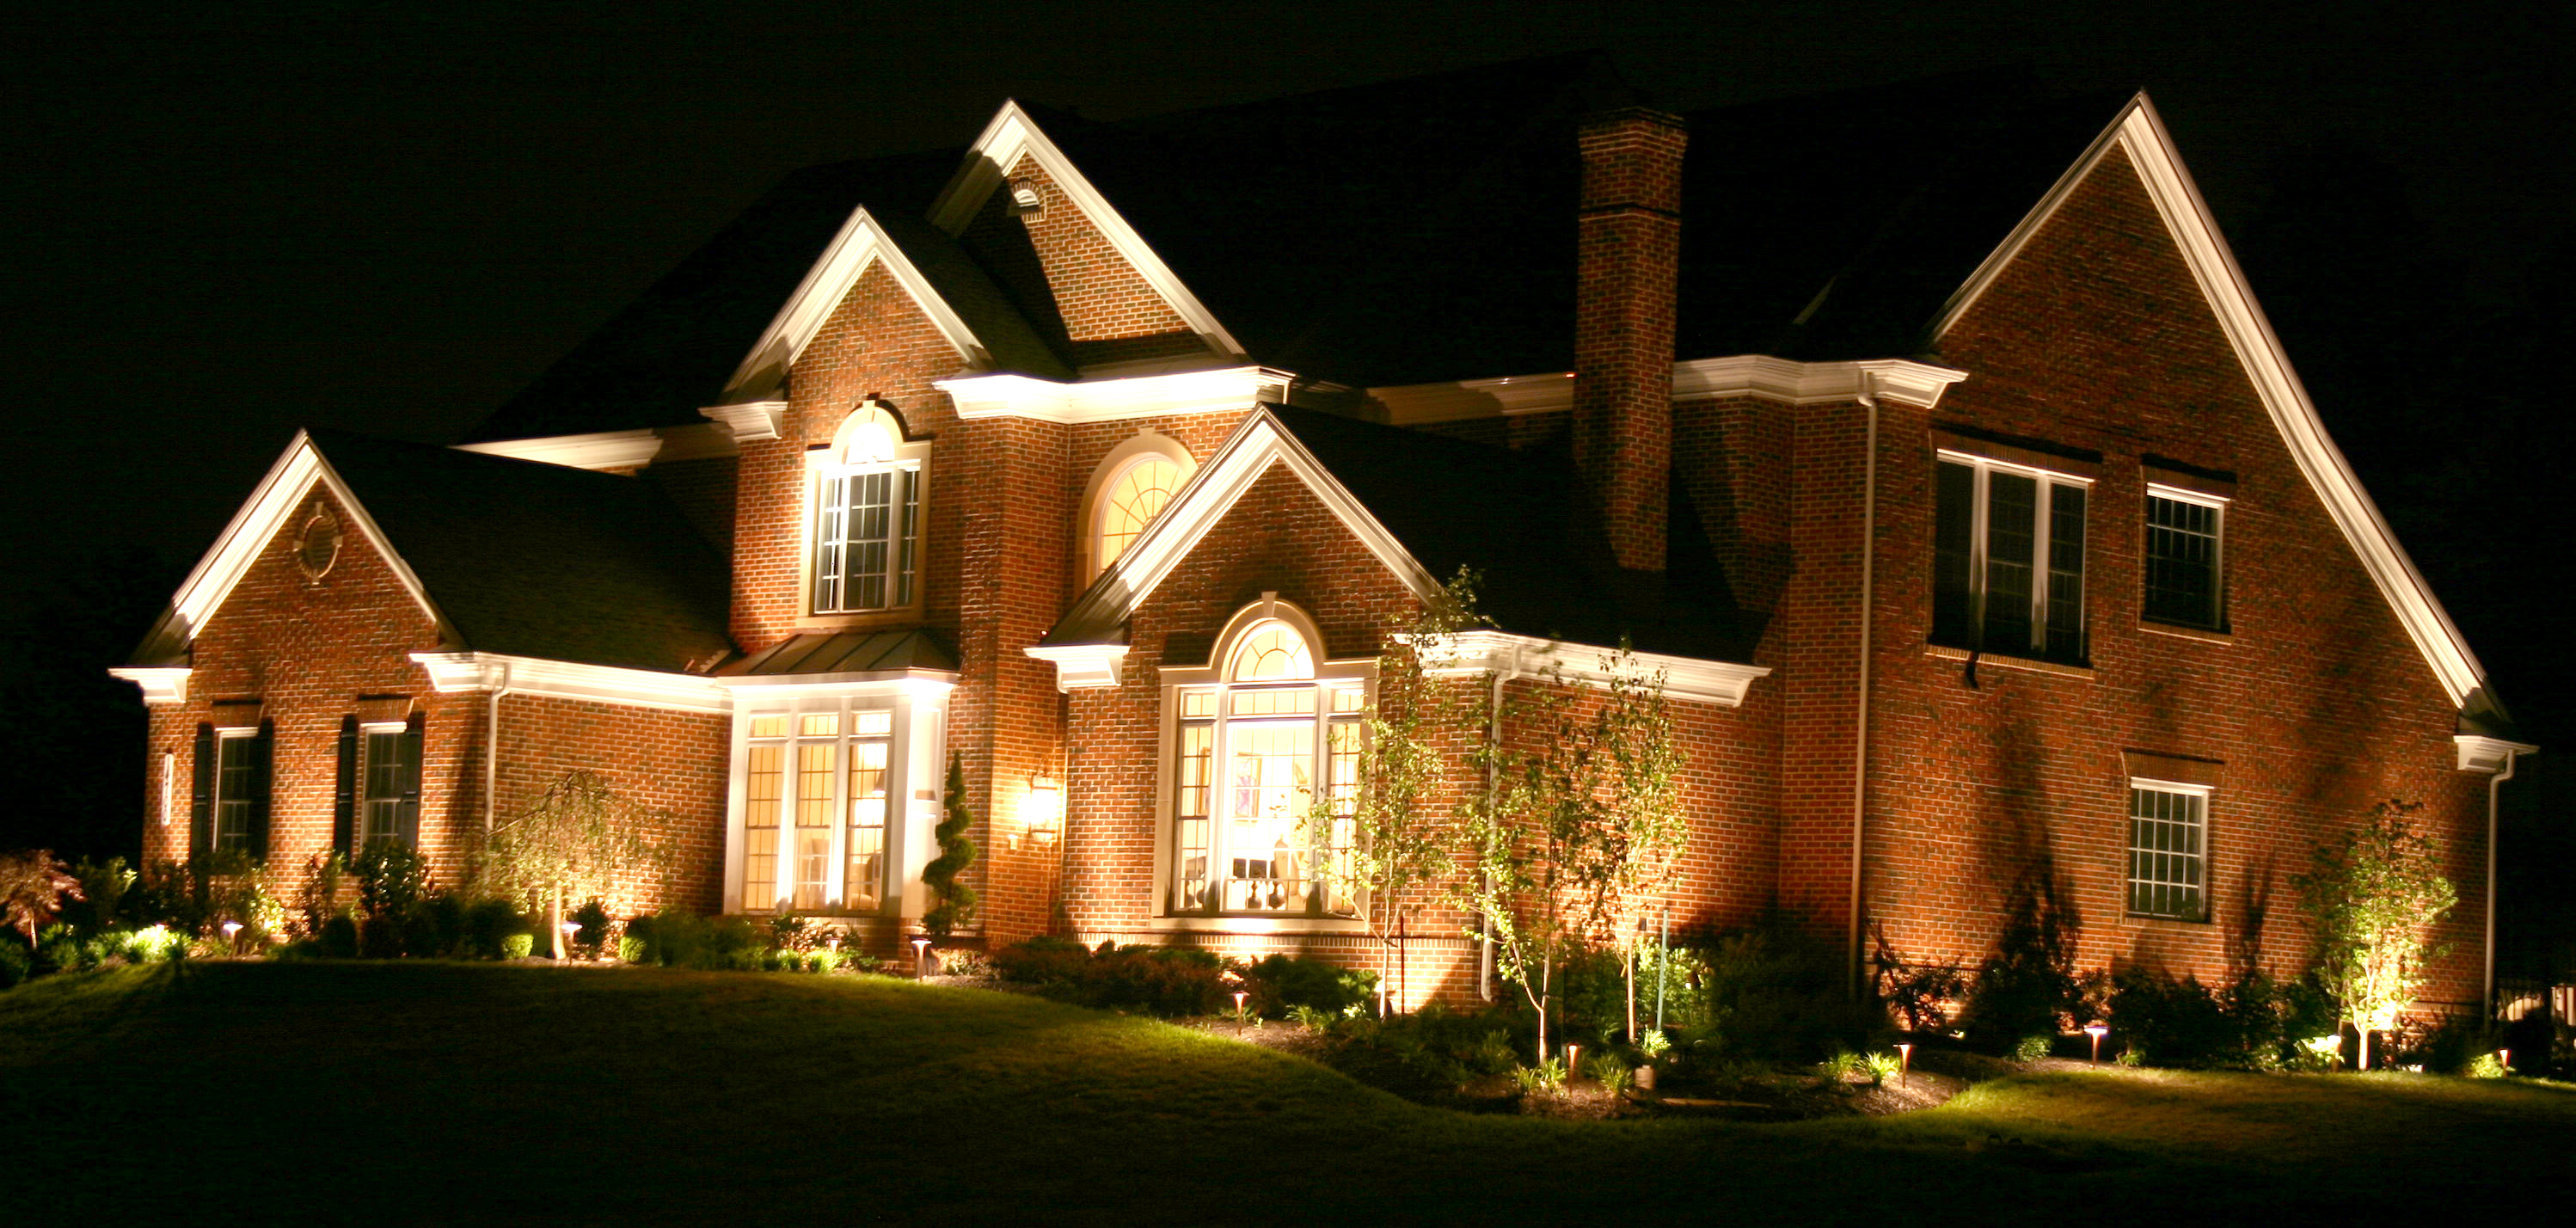 outdoor lighting company in Lexington SC